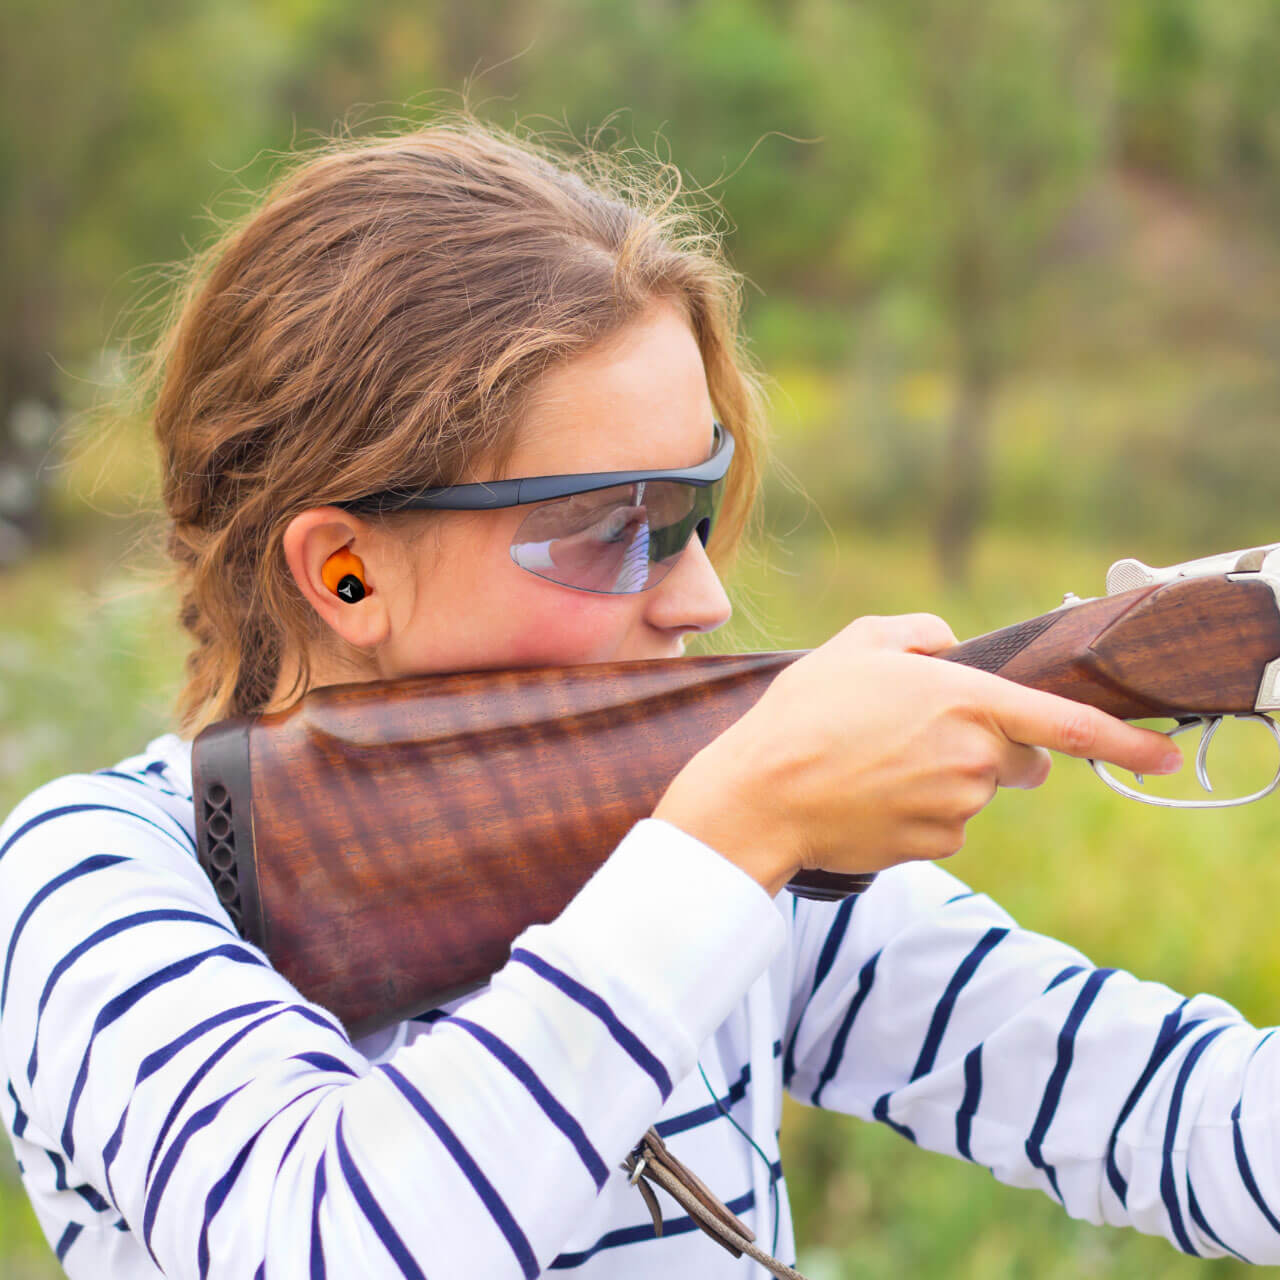 woman sport shooting with orange decibullz hearing protection